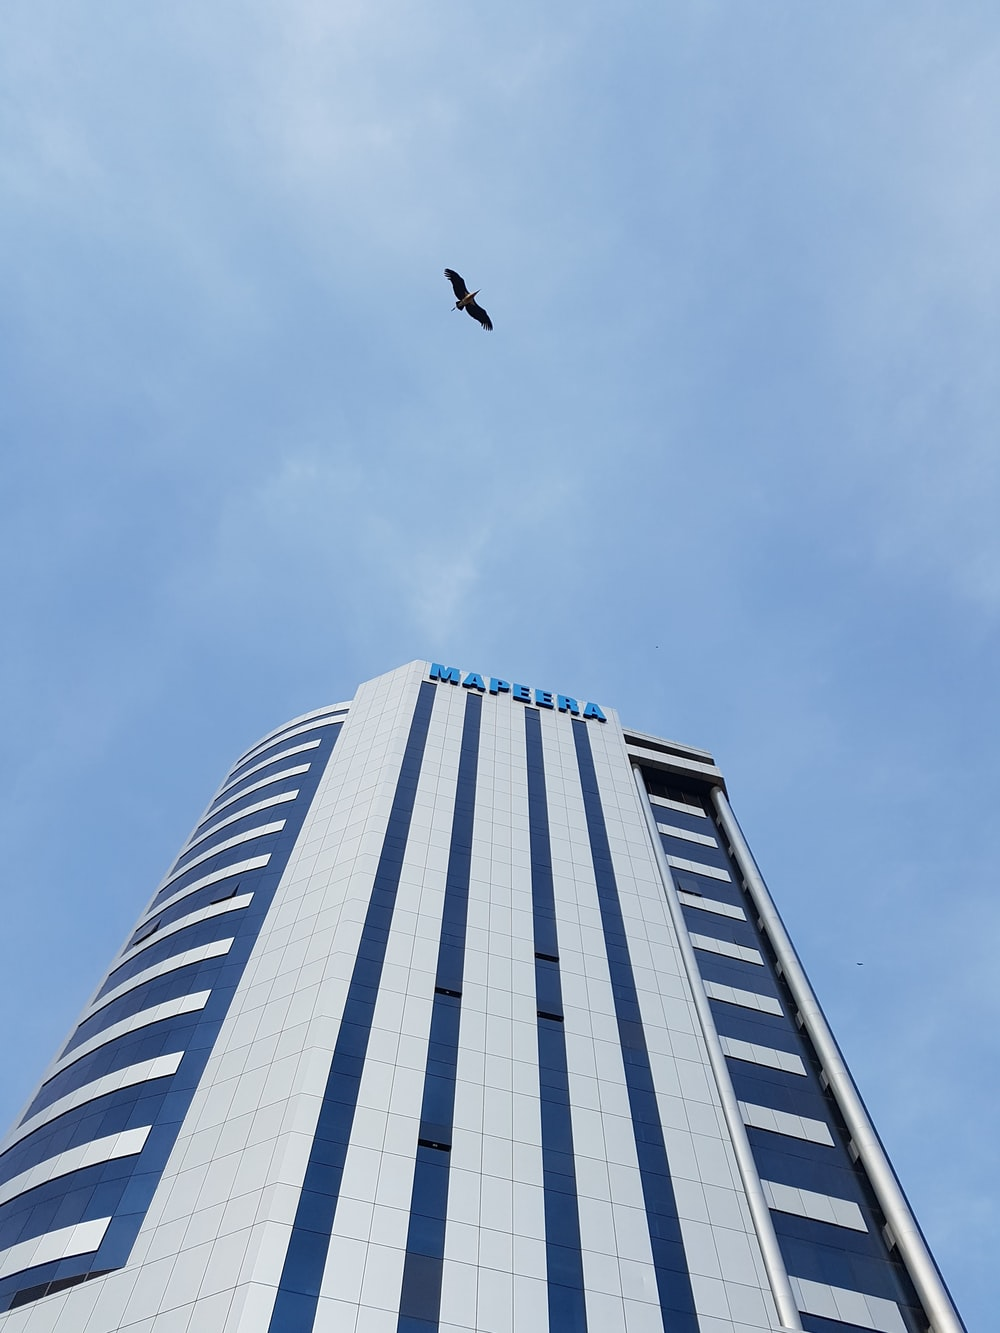 black bird flying over white and blue building during daytime